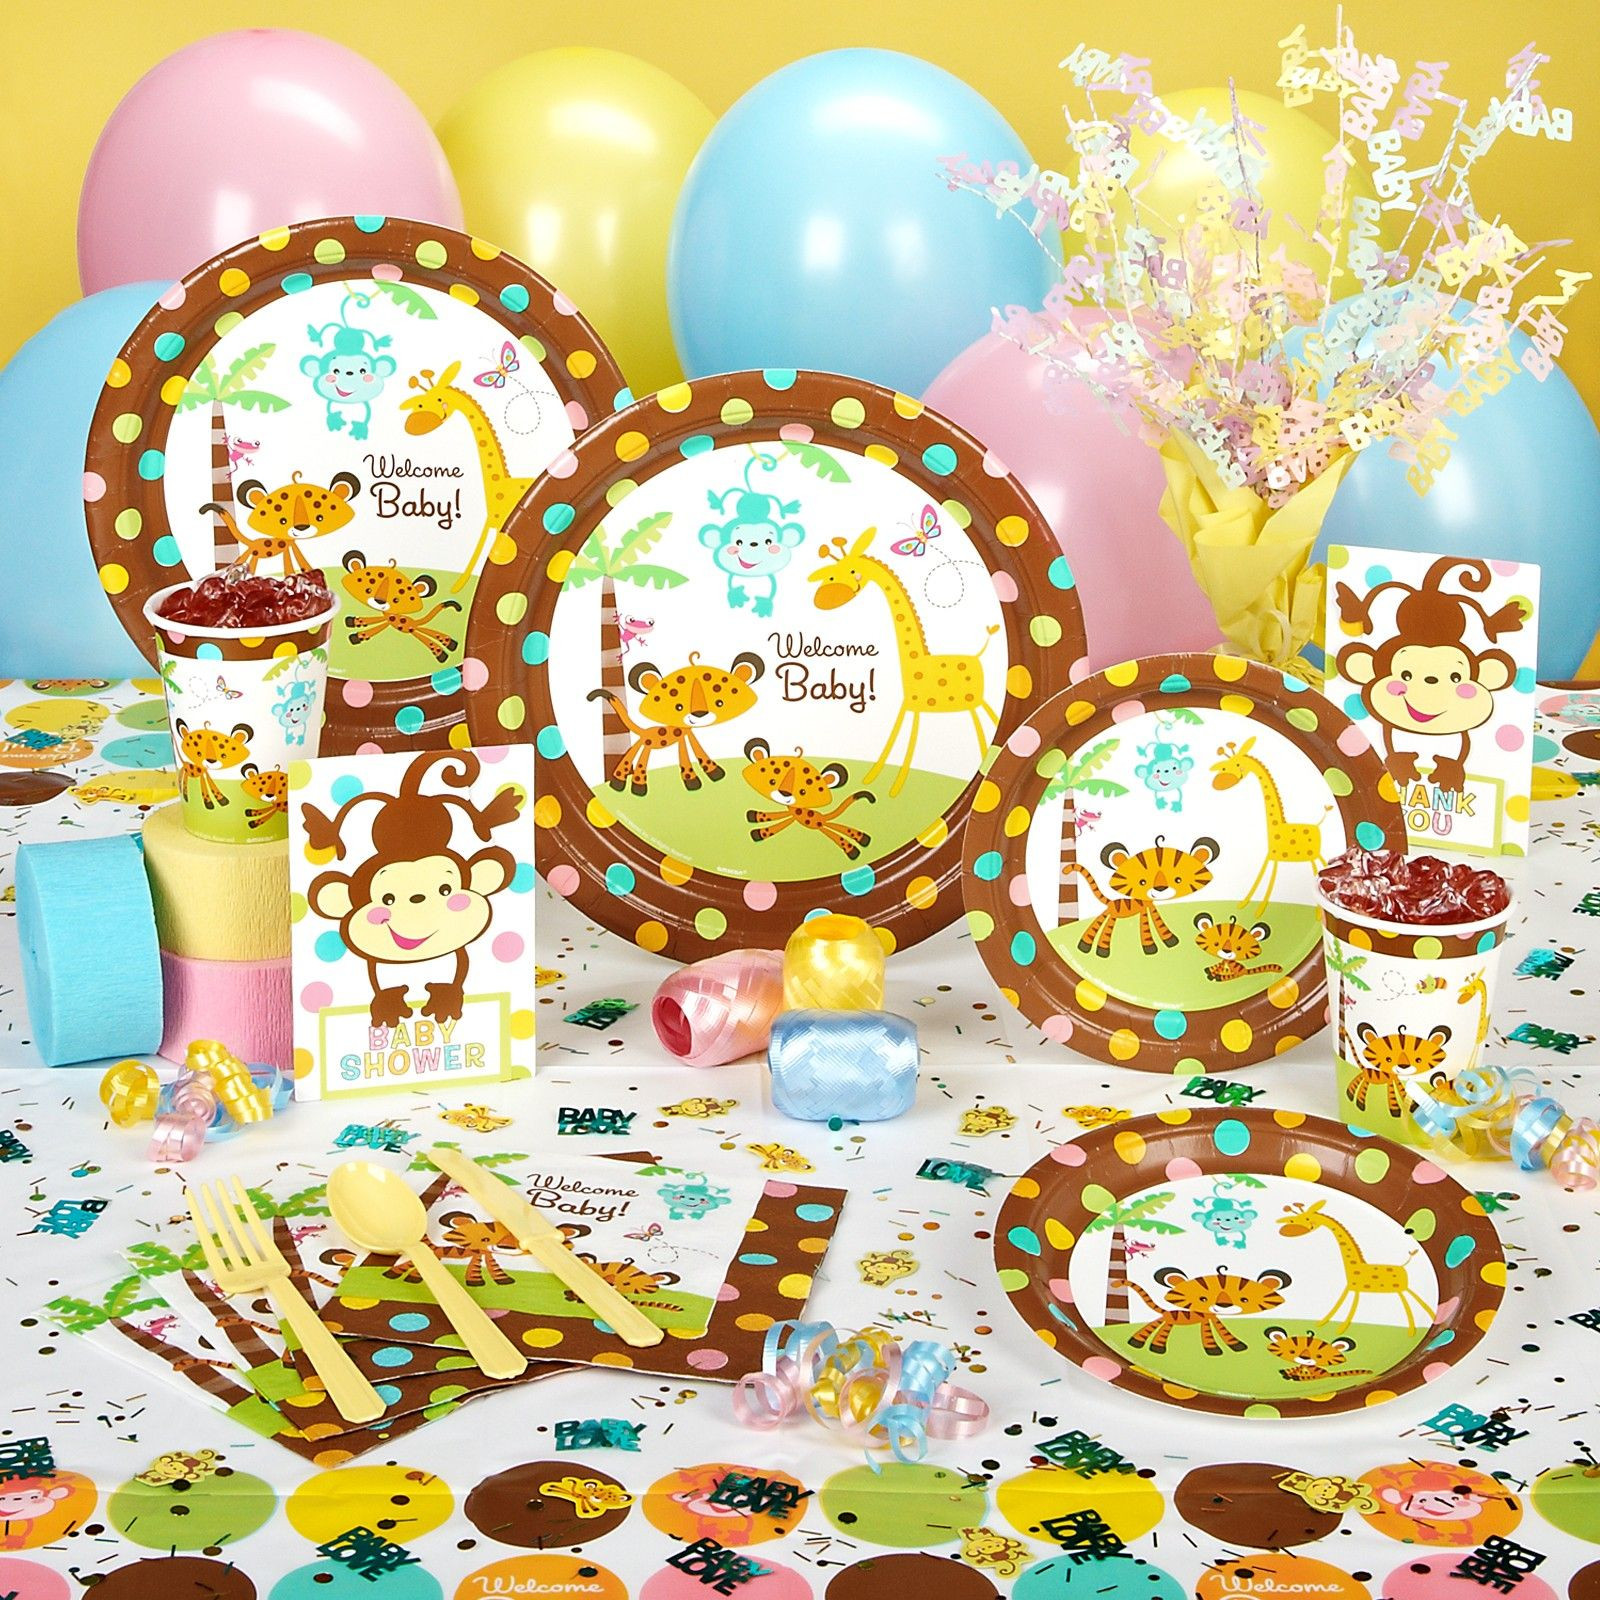 Party City Baby Shower Decorations  The 25 Best Ideas for Party City Safari theme Baby Shower